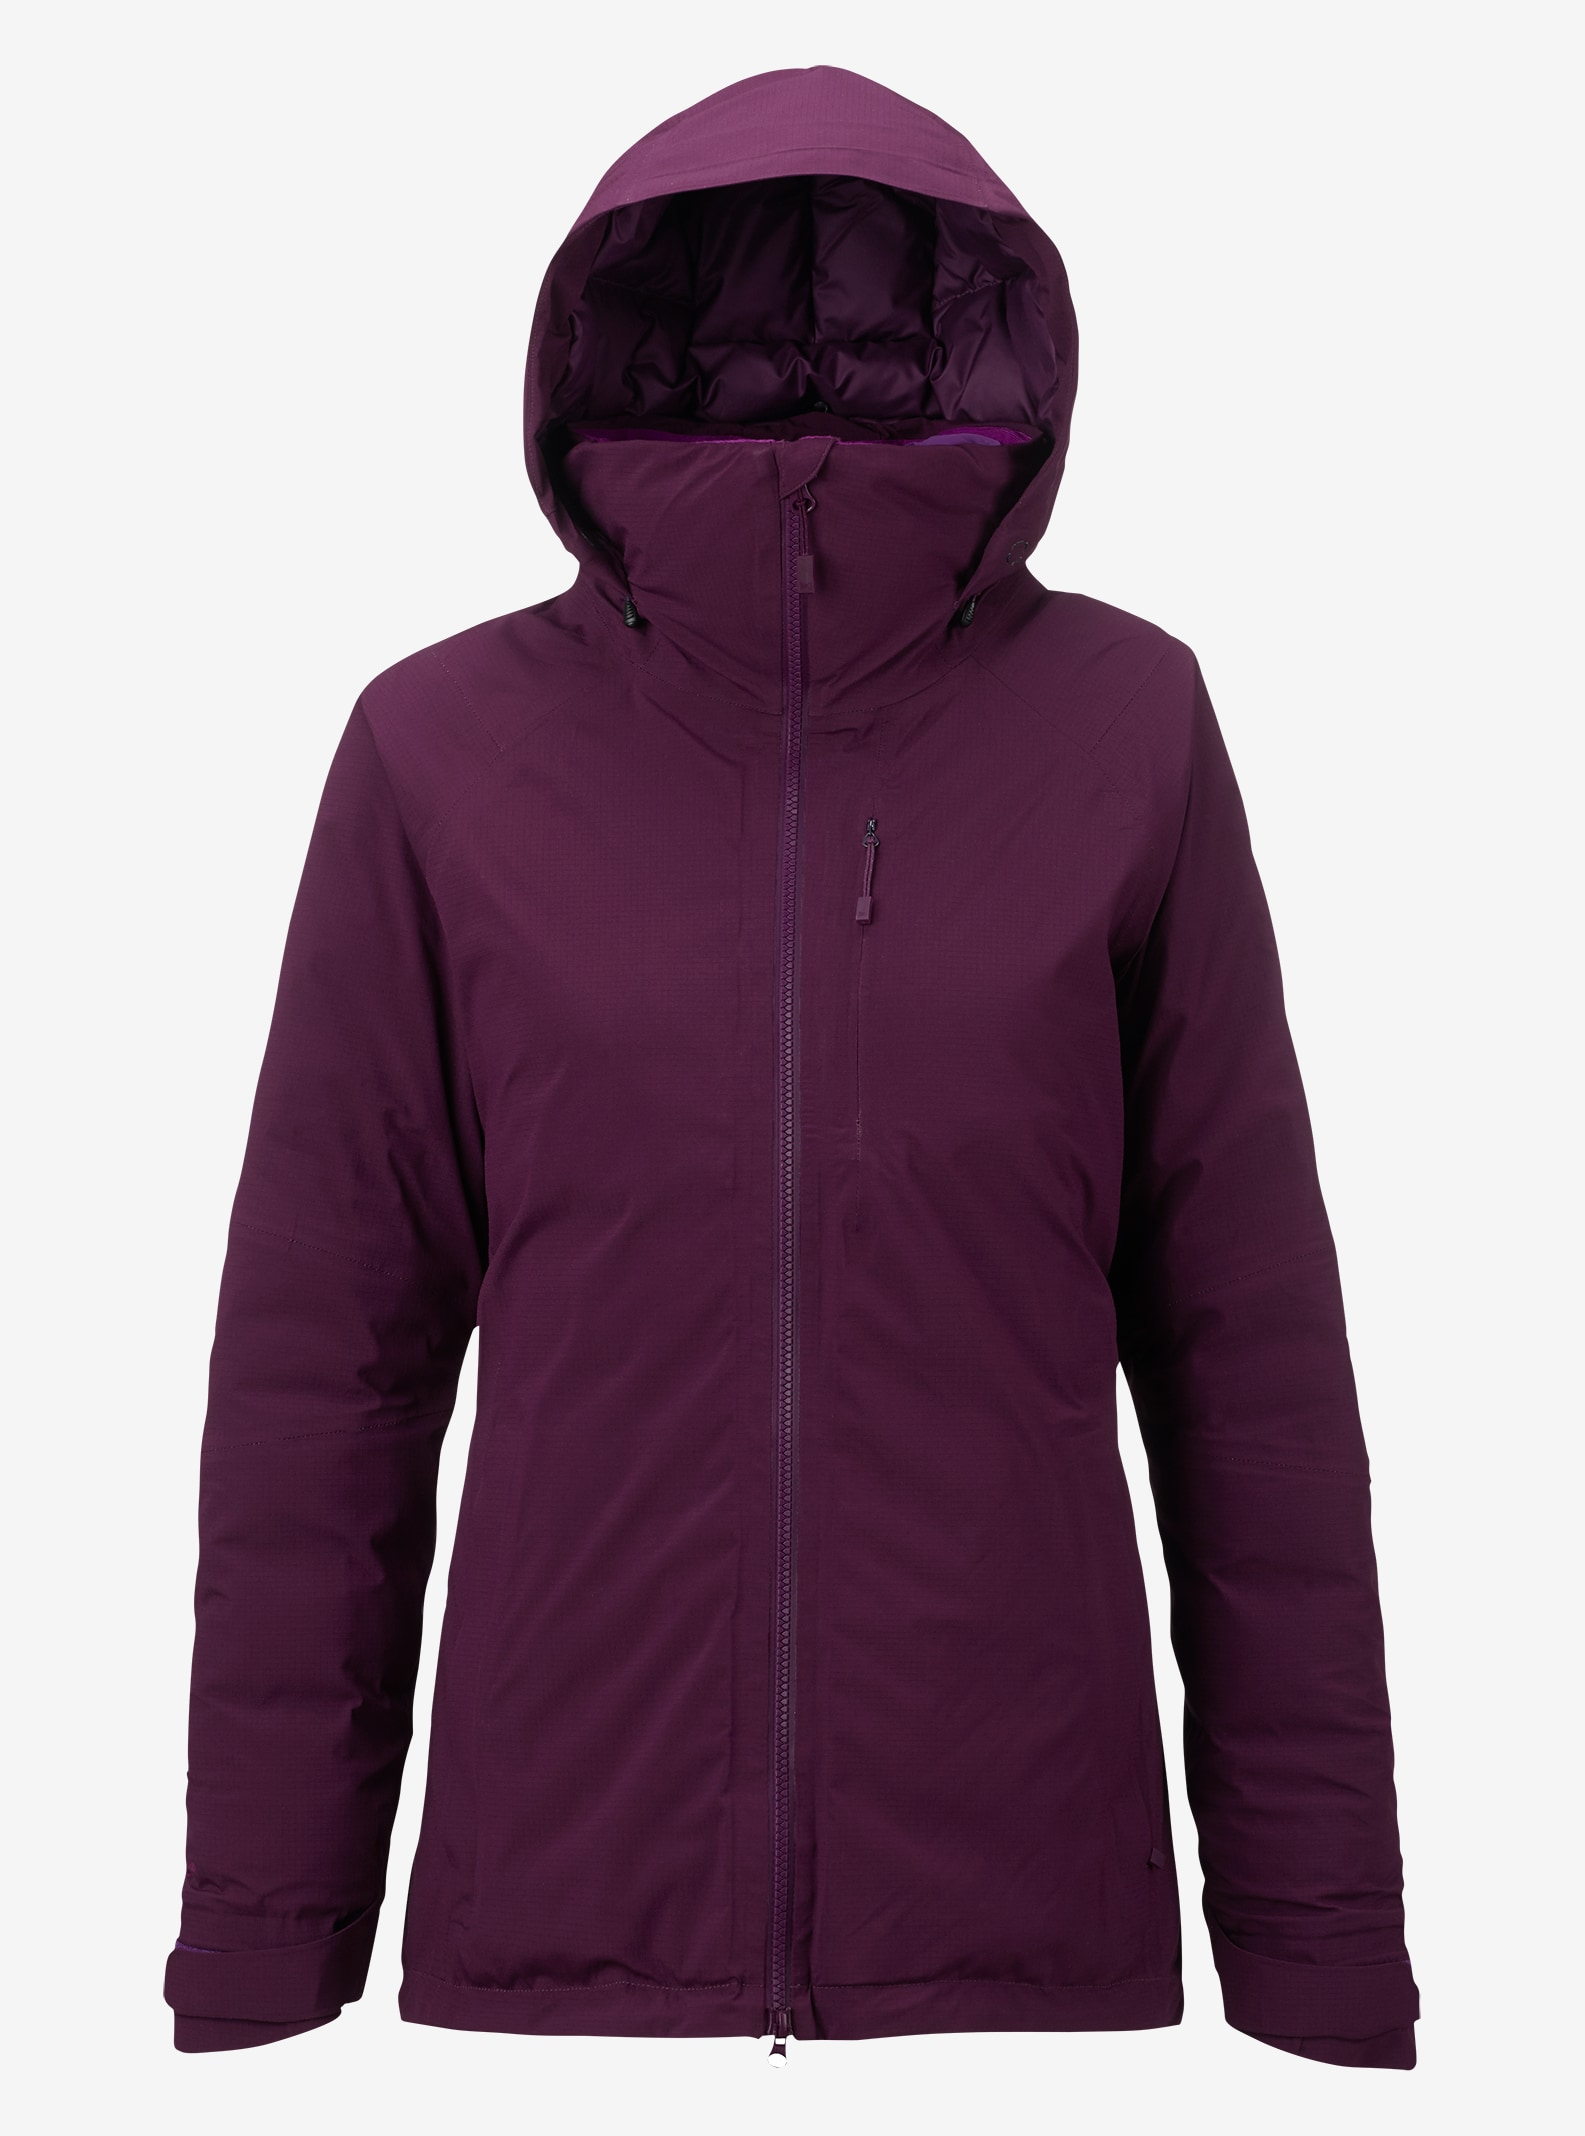 Women's Burton [ak] GORE‑TEX® Flare Down Jacket shown in Starling